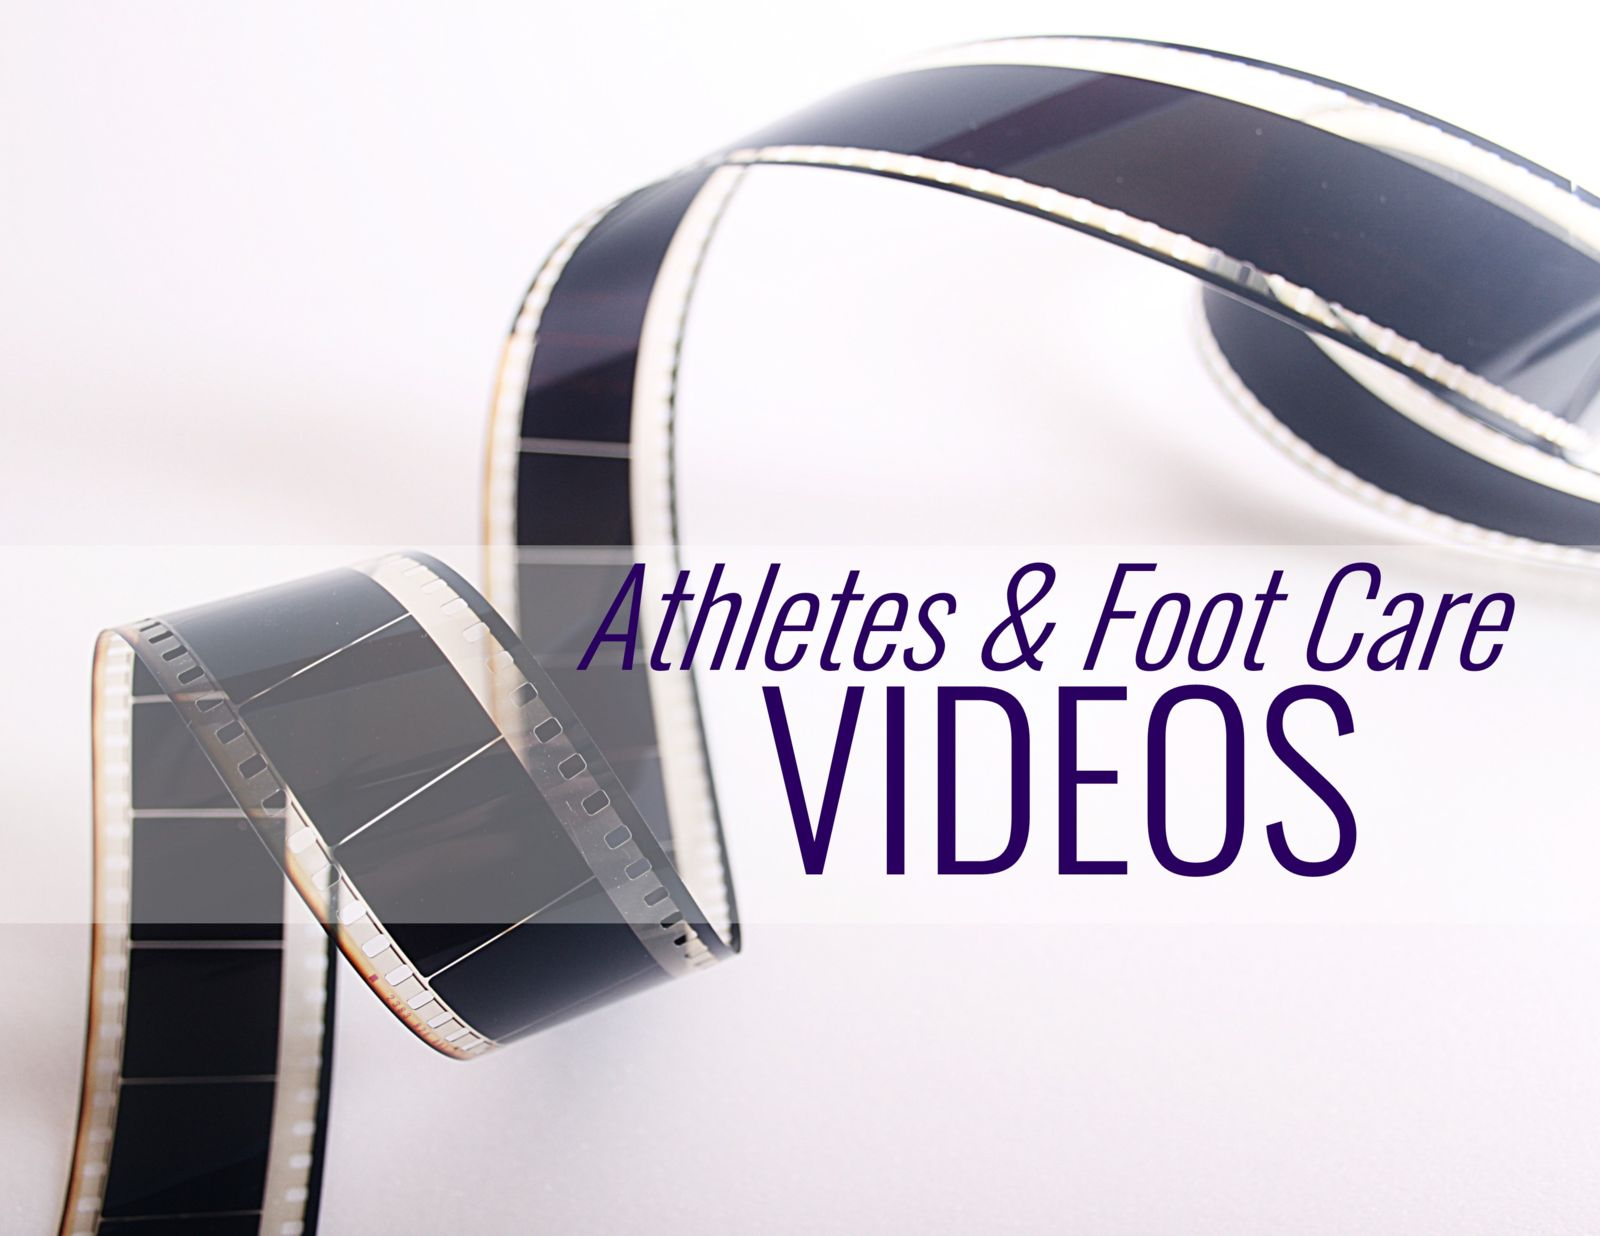 movie reel and the words athletes & foot care videos